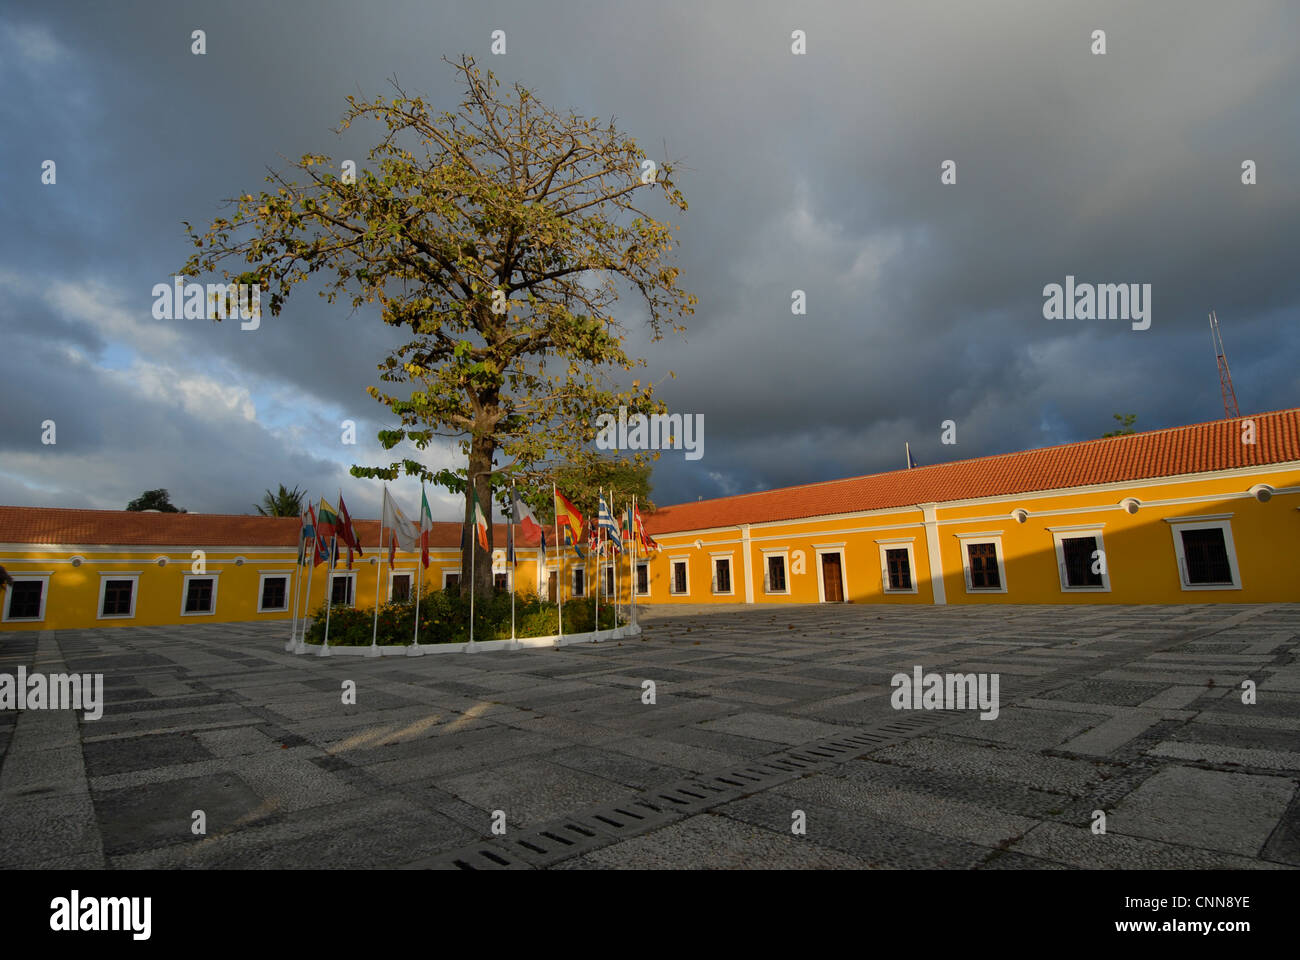 'Casa Europa' in Dili Timor Leste,  a former Portuguese barracks it  housed the European Union Delegation. - Stock Image